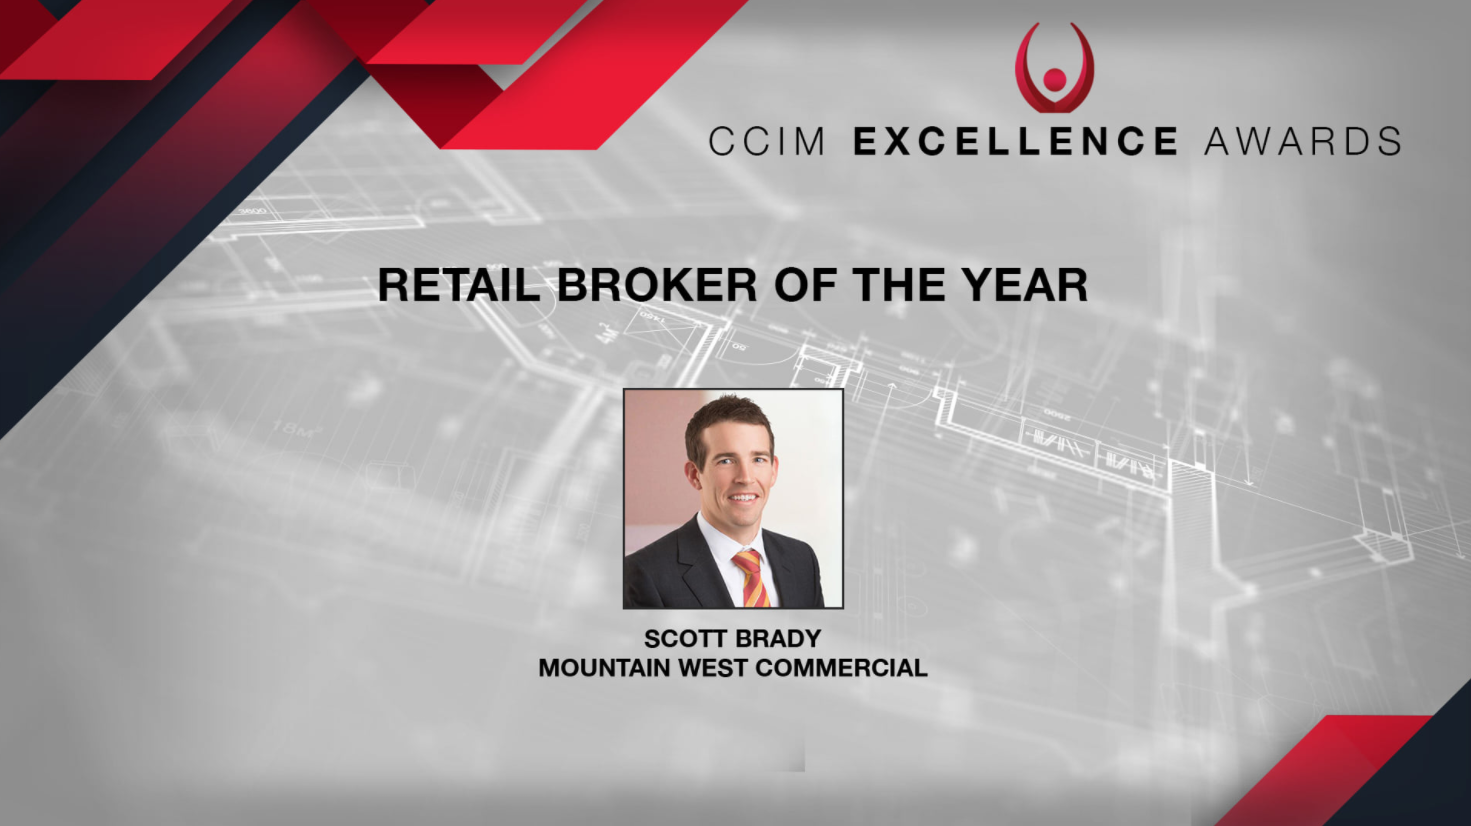 CCIM Recognizes Mountain West Commercial Real Estate Agent  Scott Brady as 2020's Retail Broker of the Year